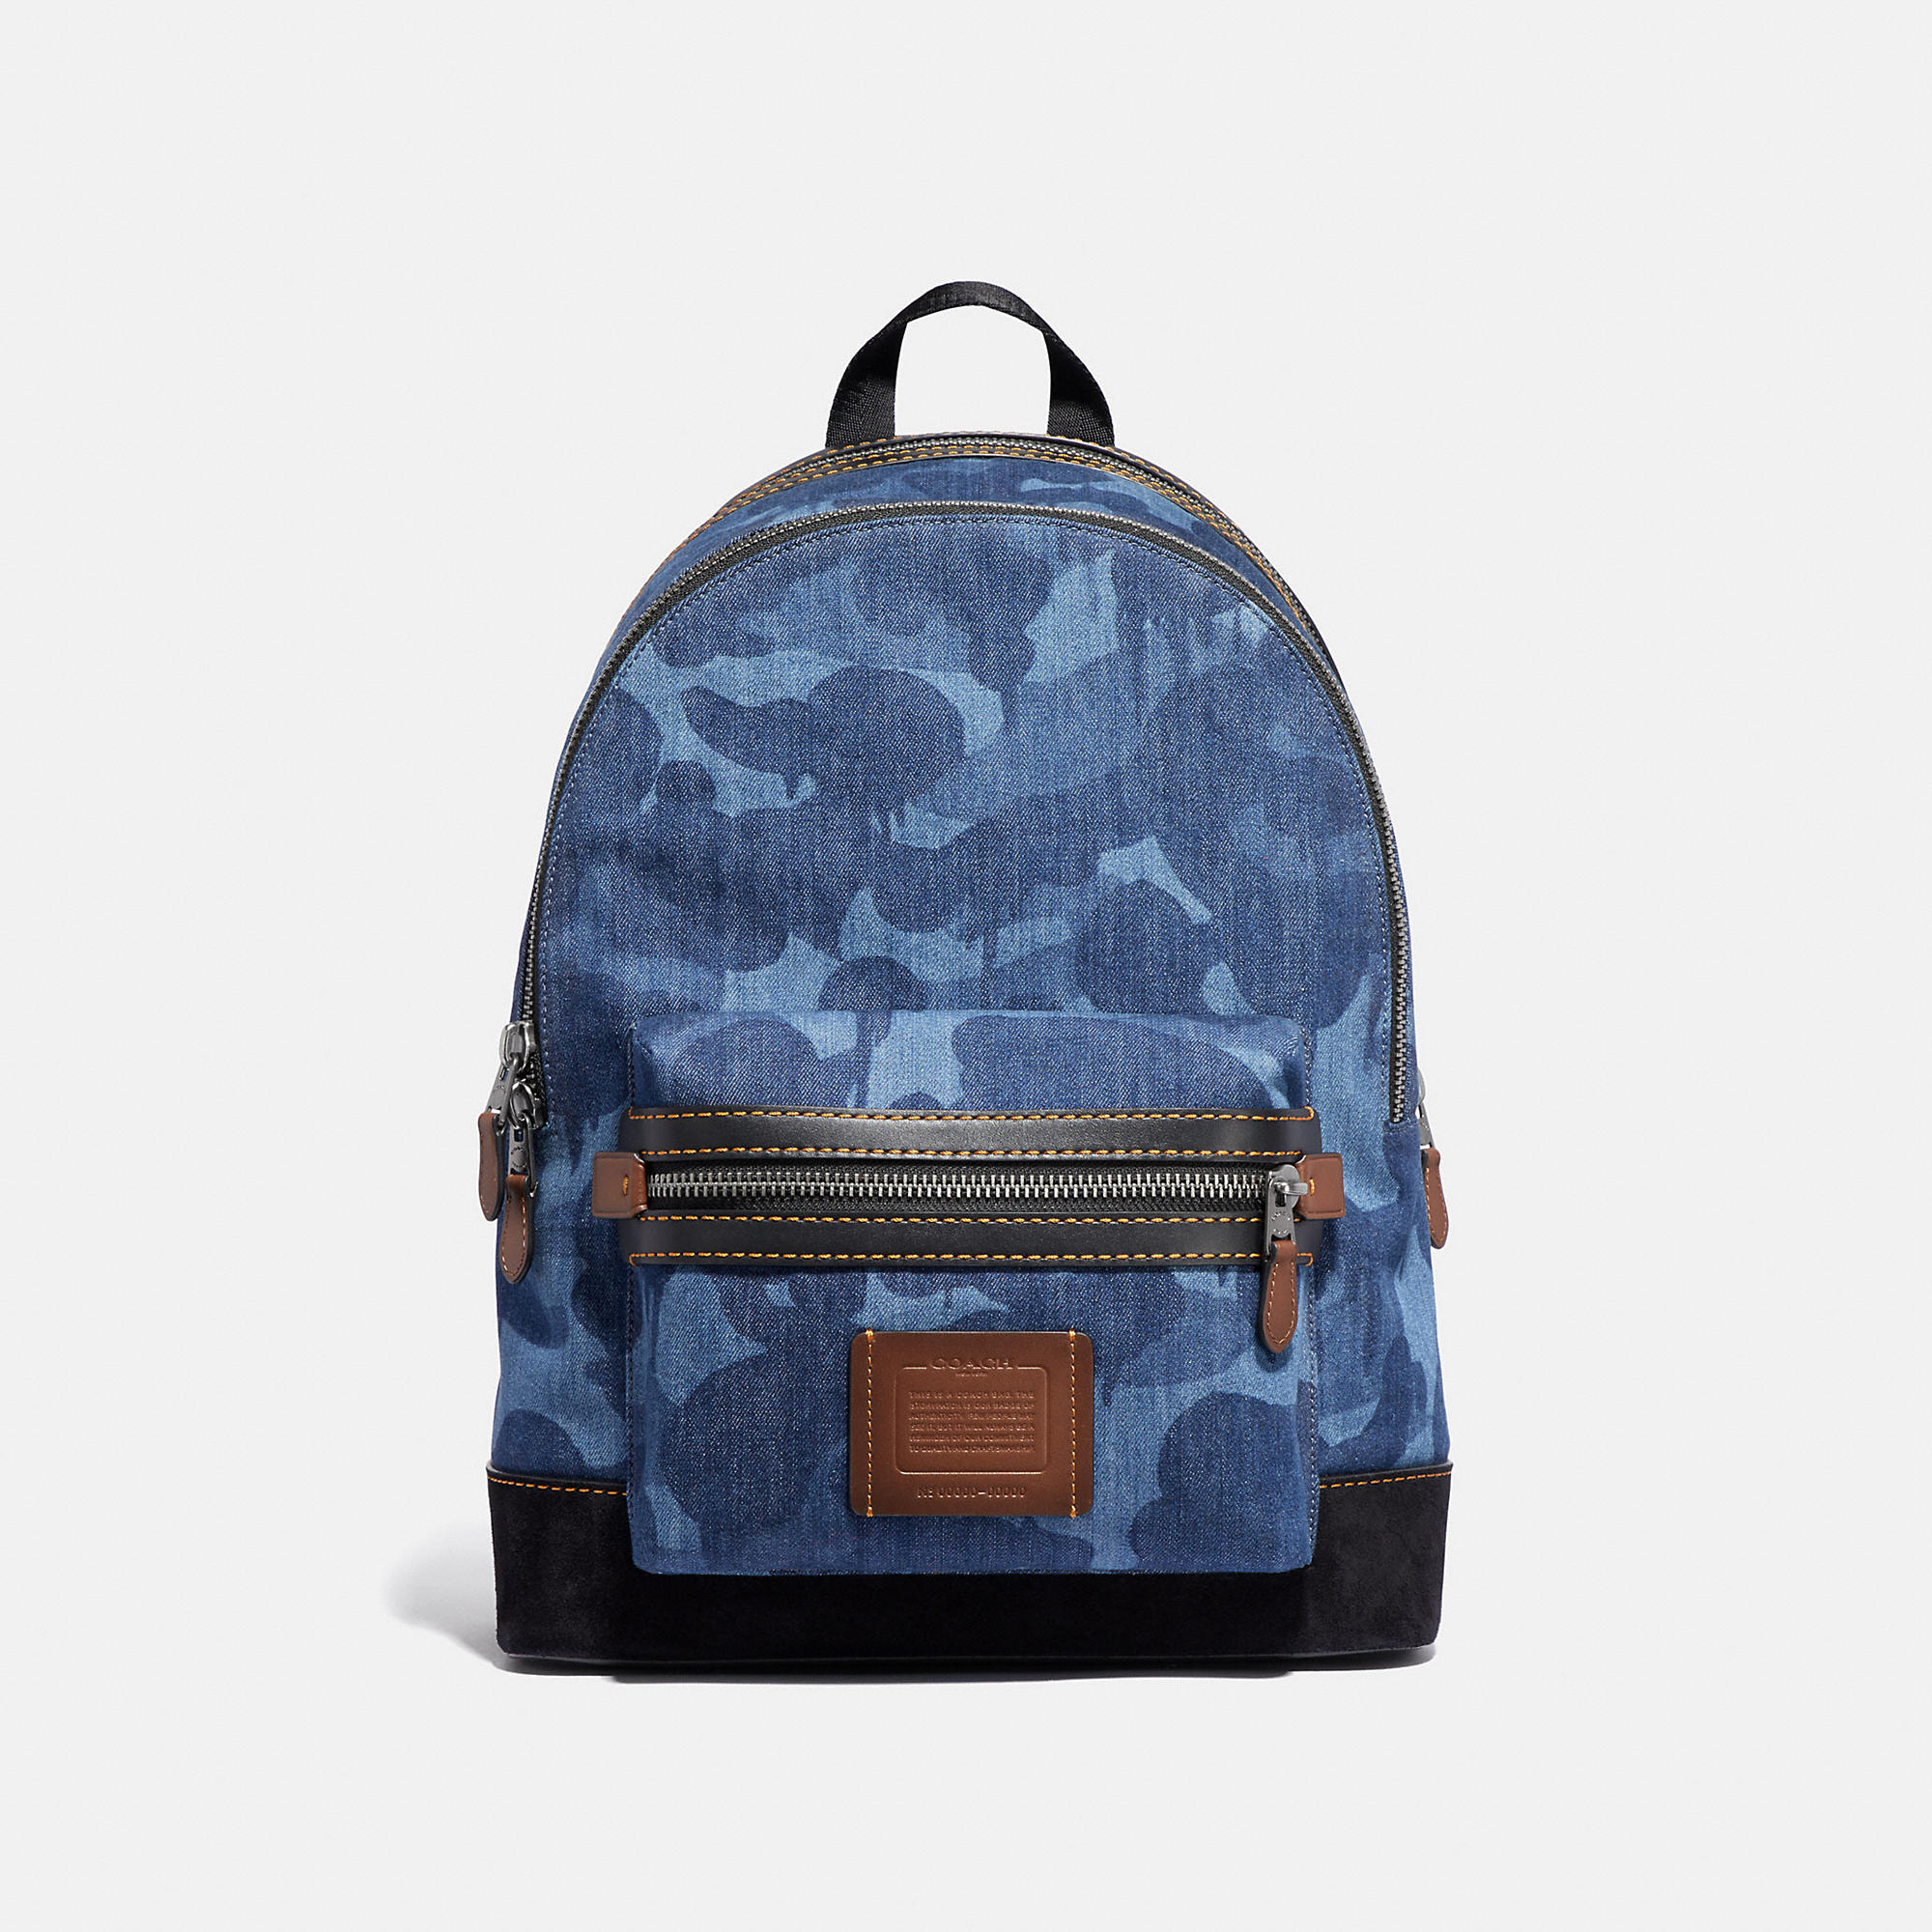 Coach Backpacks ACADEMY BACKPACK WITH WILD BEAST PRINT